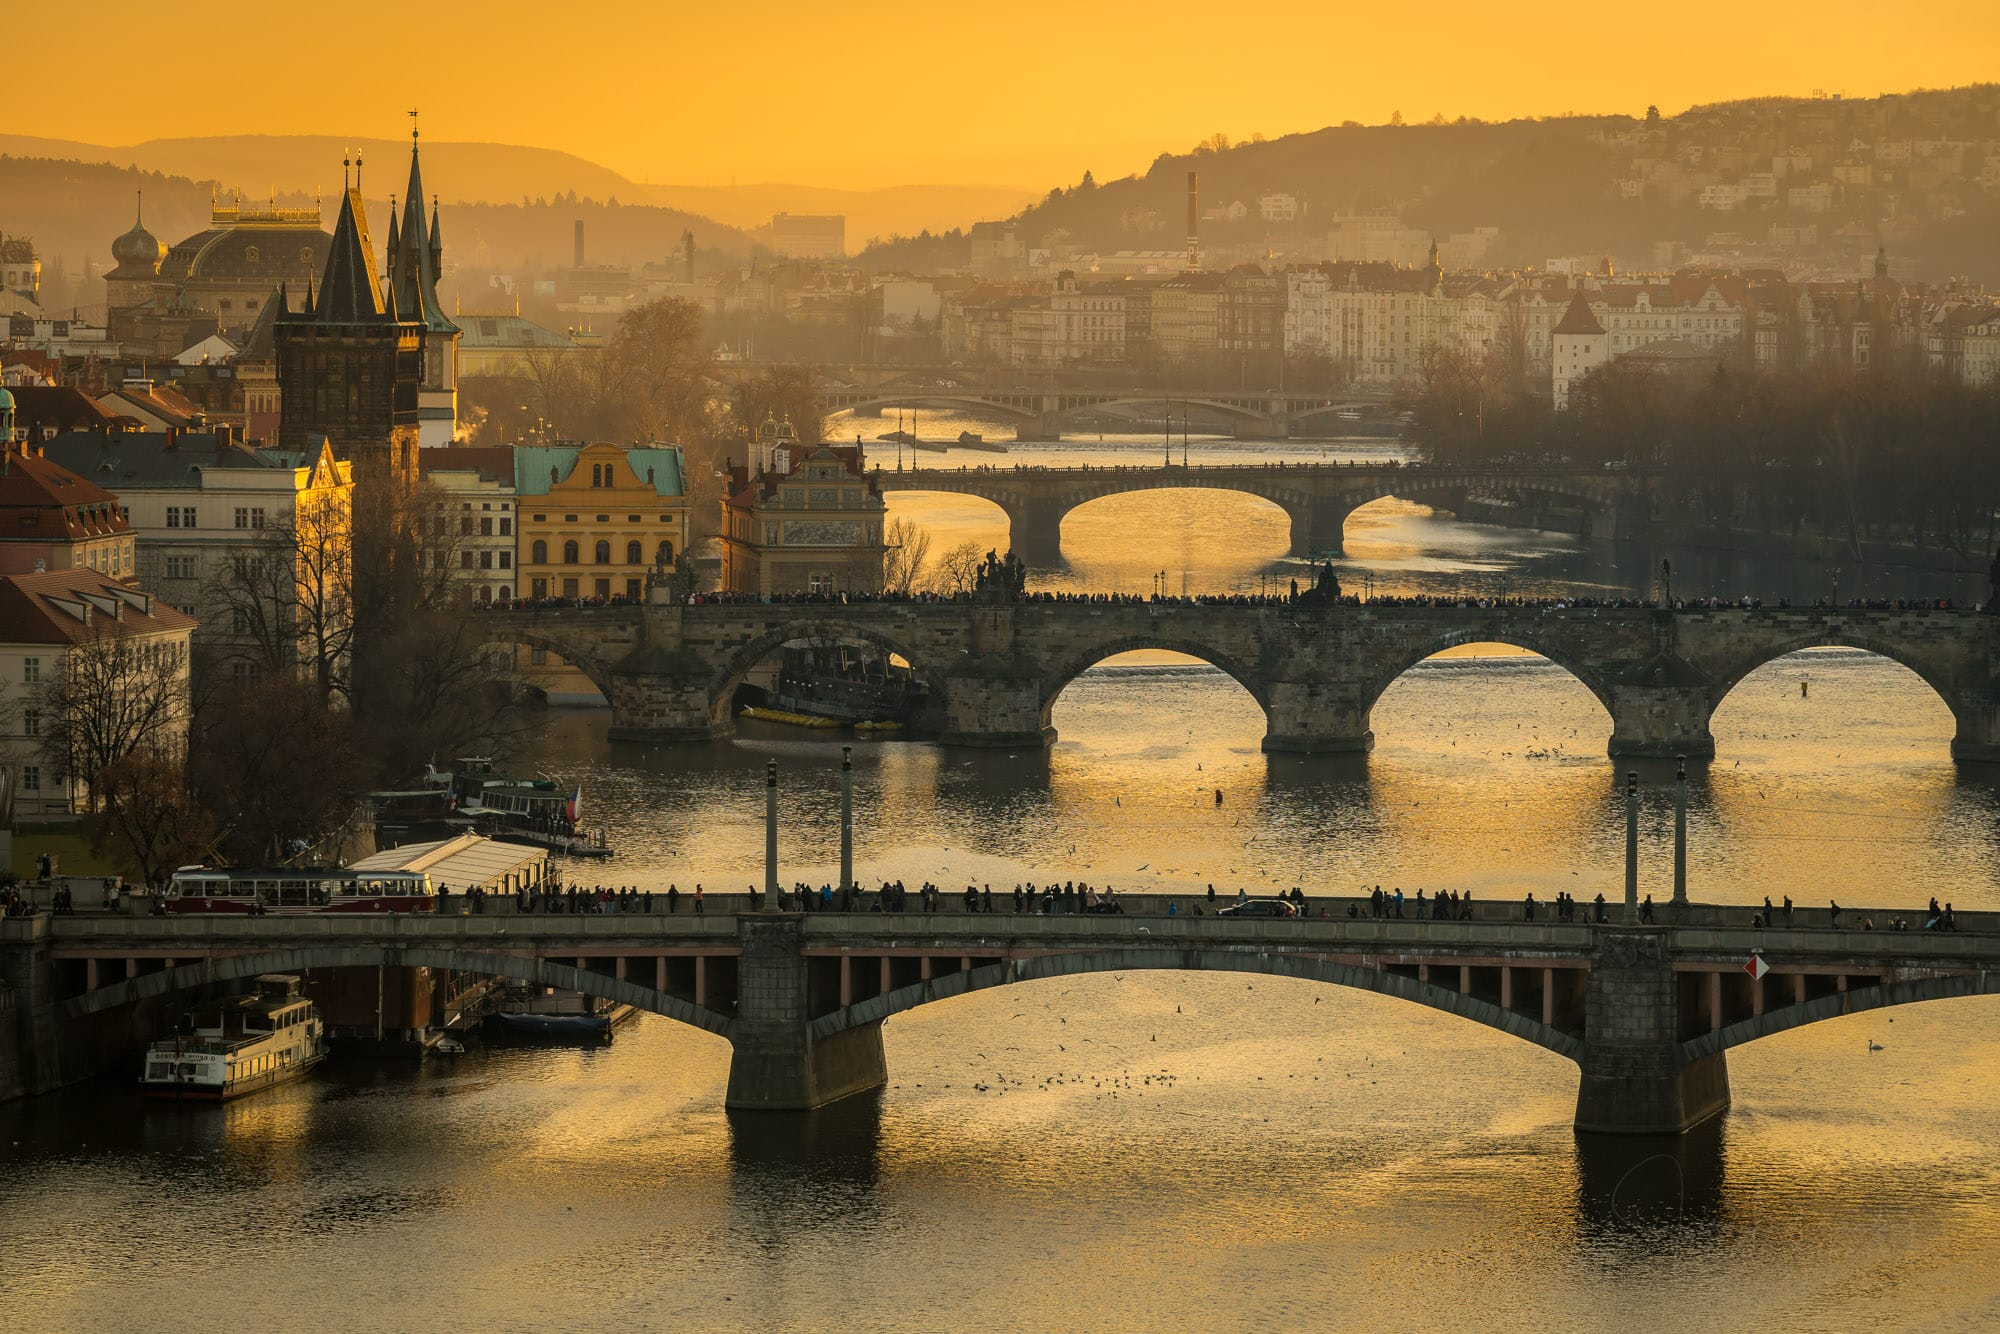 Bridges over Vltava River at sunset